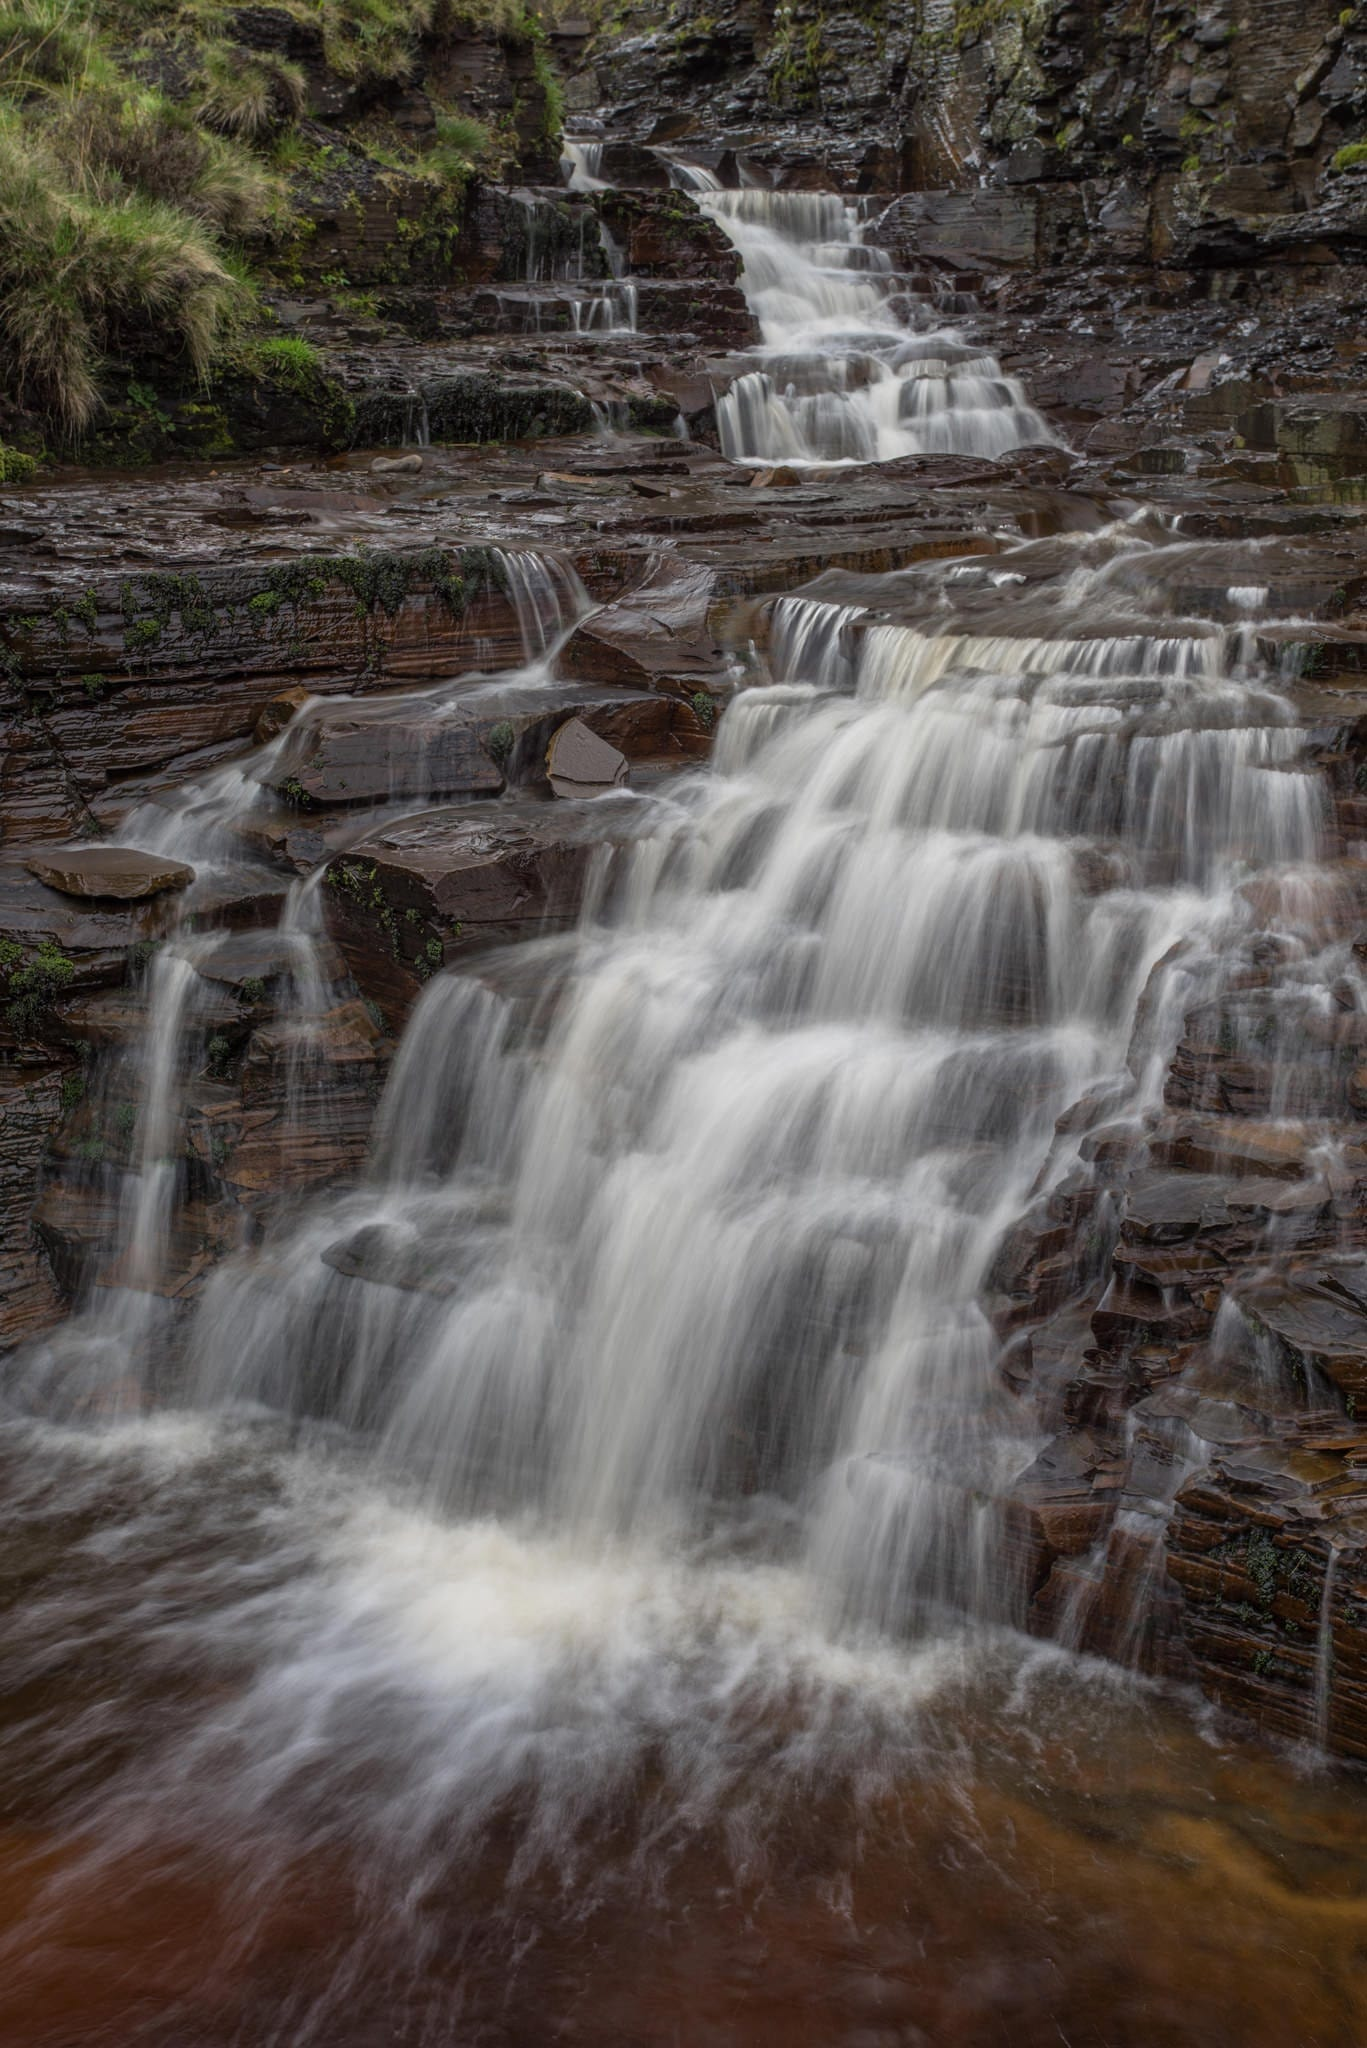 Grindsbrook Clough Waterfall - Kinder Scout Photography Workshop